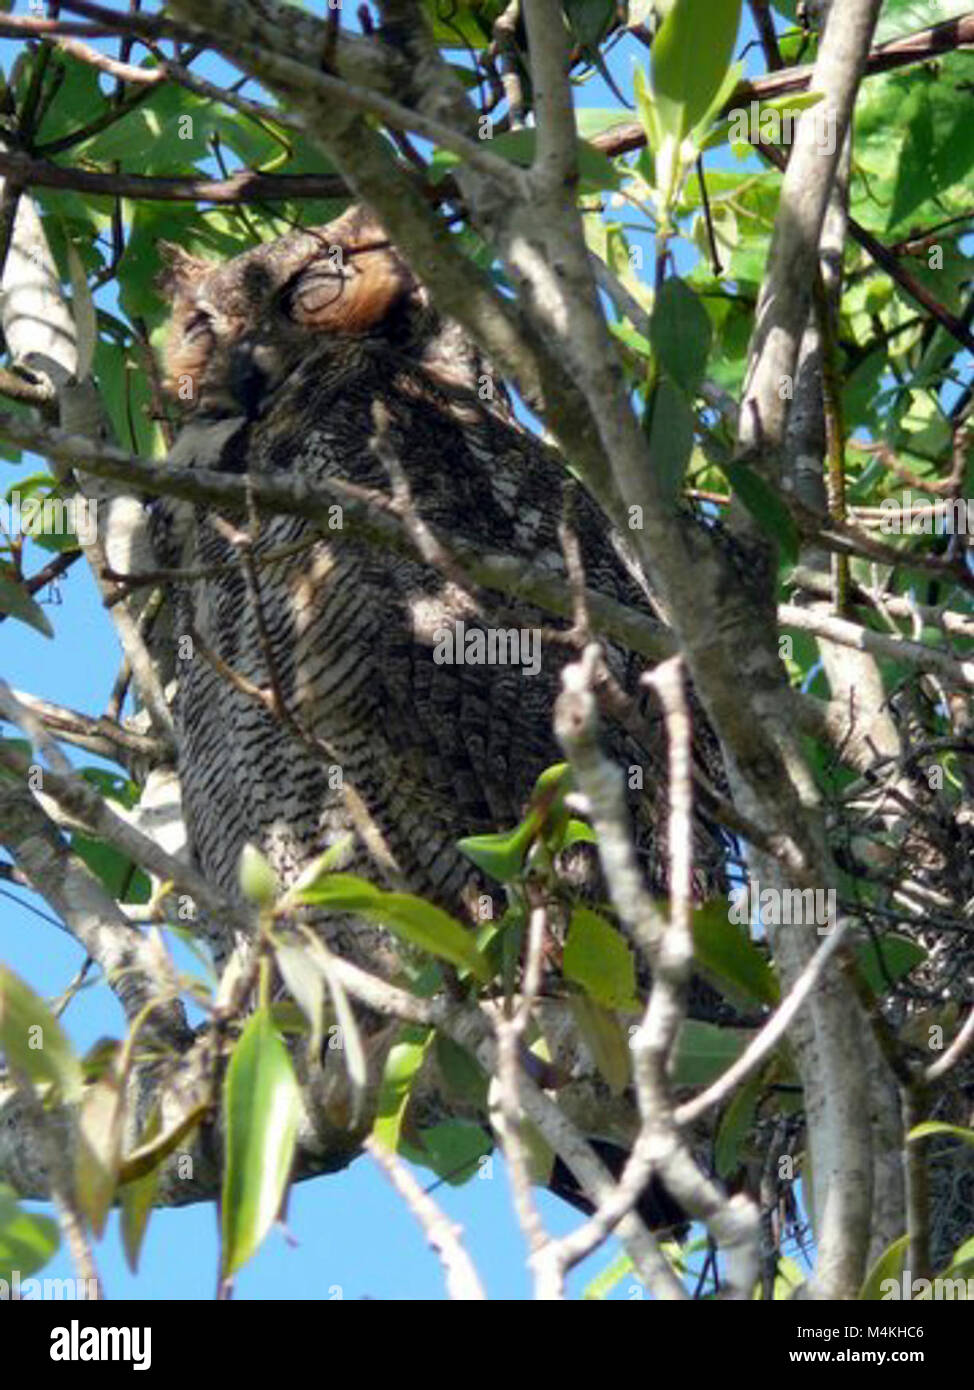 Around the Shark Valley Visitor Center parking lot. Great Horned Owl Sleeping. Stock Photo